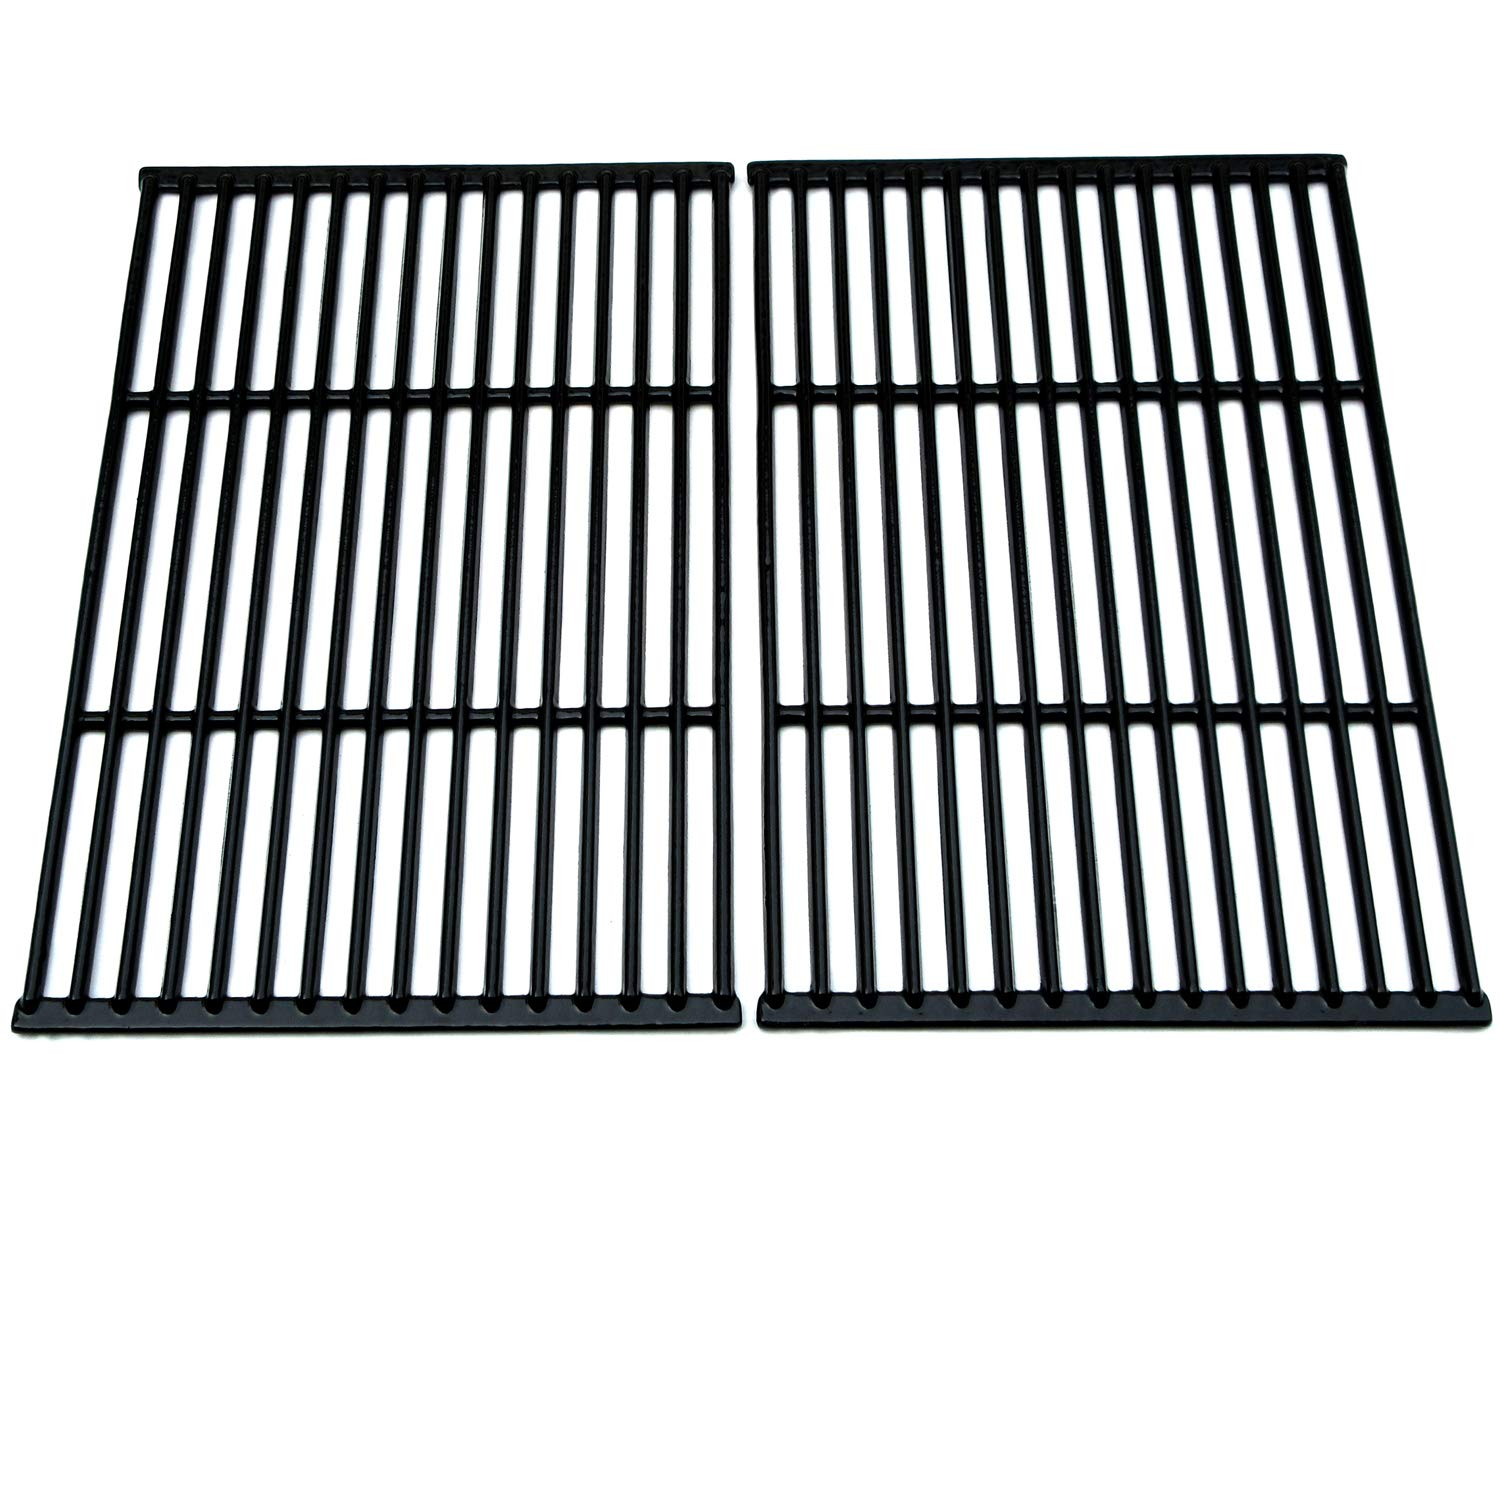 Direct Store Parts DC122 Polished Porcelain Coated Cast Iron Cooking Grid Replacement Charbroil, Brinkmann, Broil-Mate, Charmglow, Grill Chef, Grill Pro, Grill Zone, Sterling, Turbo Gas Grill by Direct Store